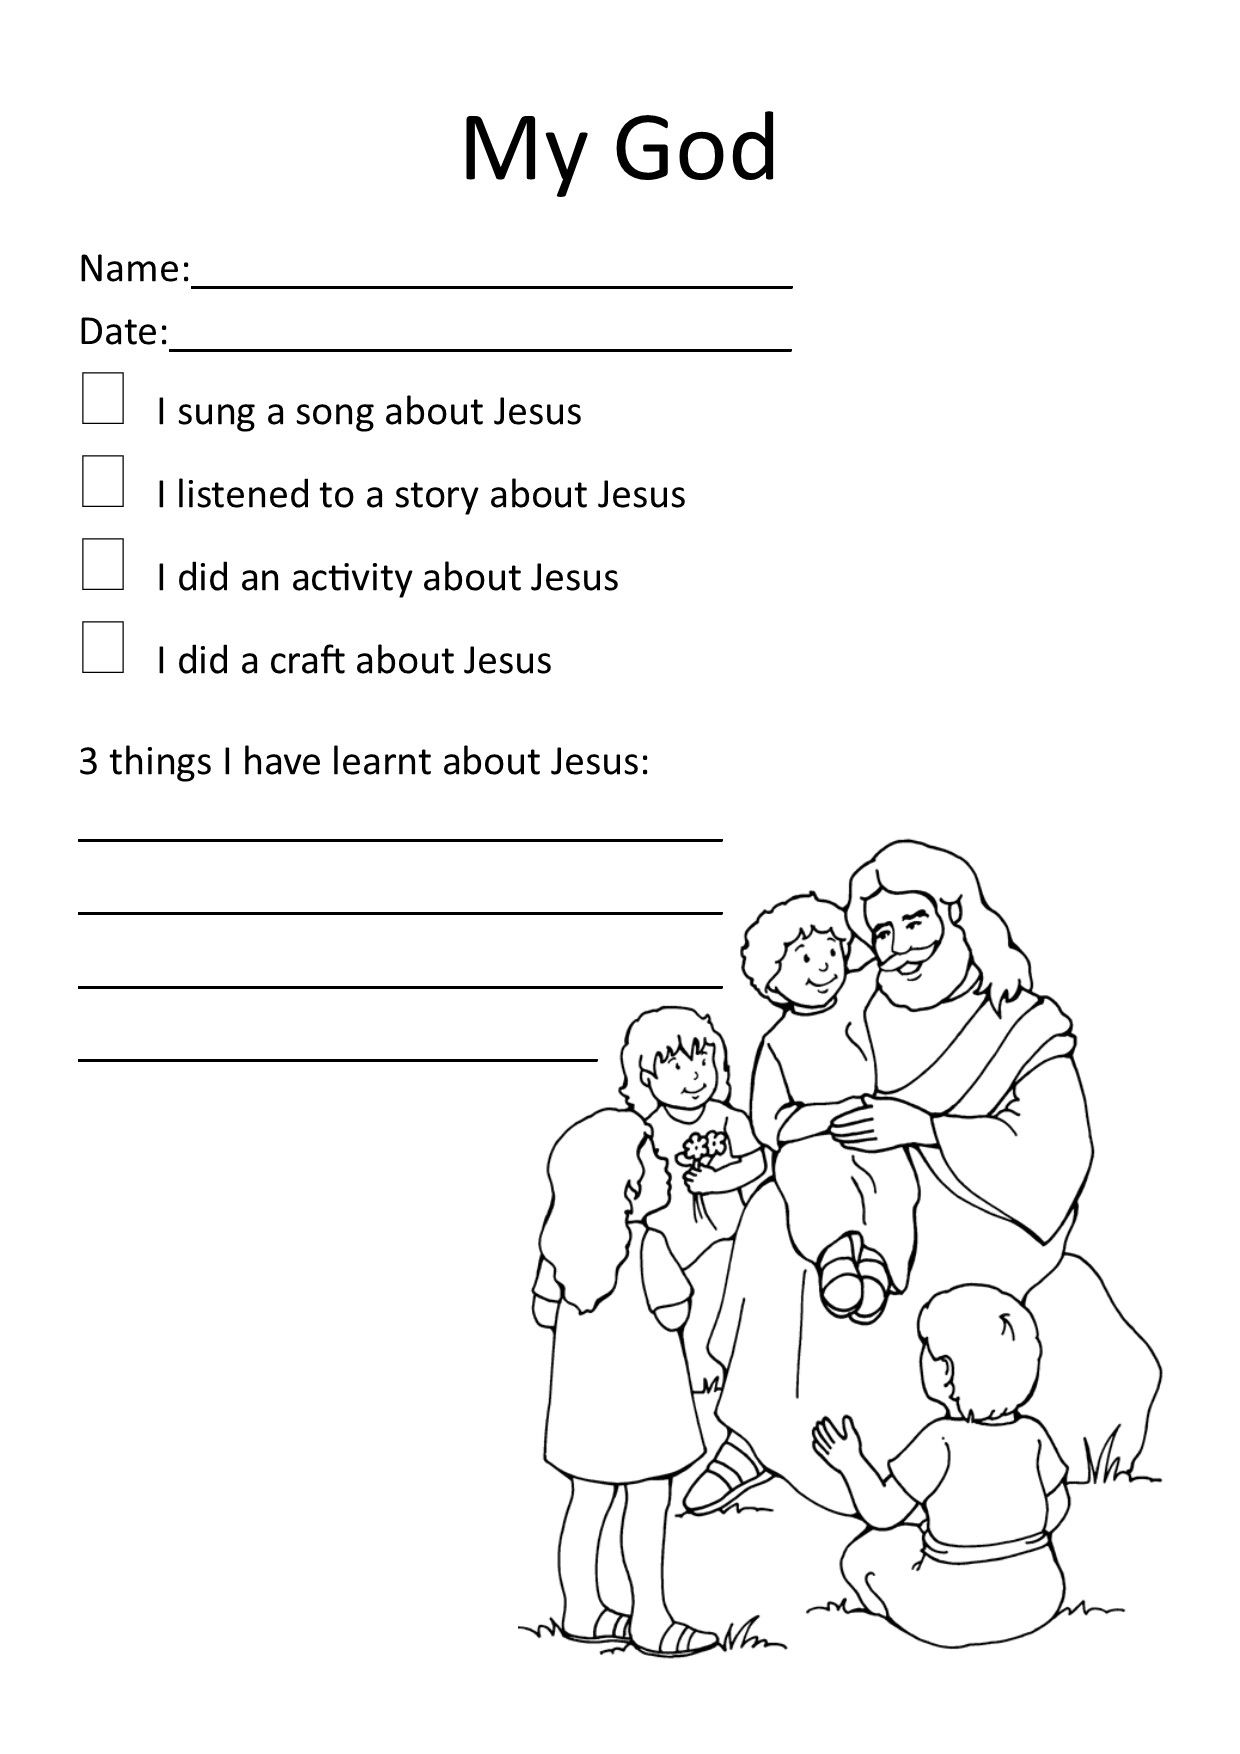 My God Worksheet